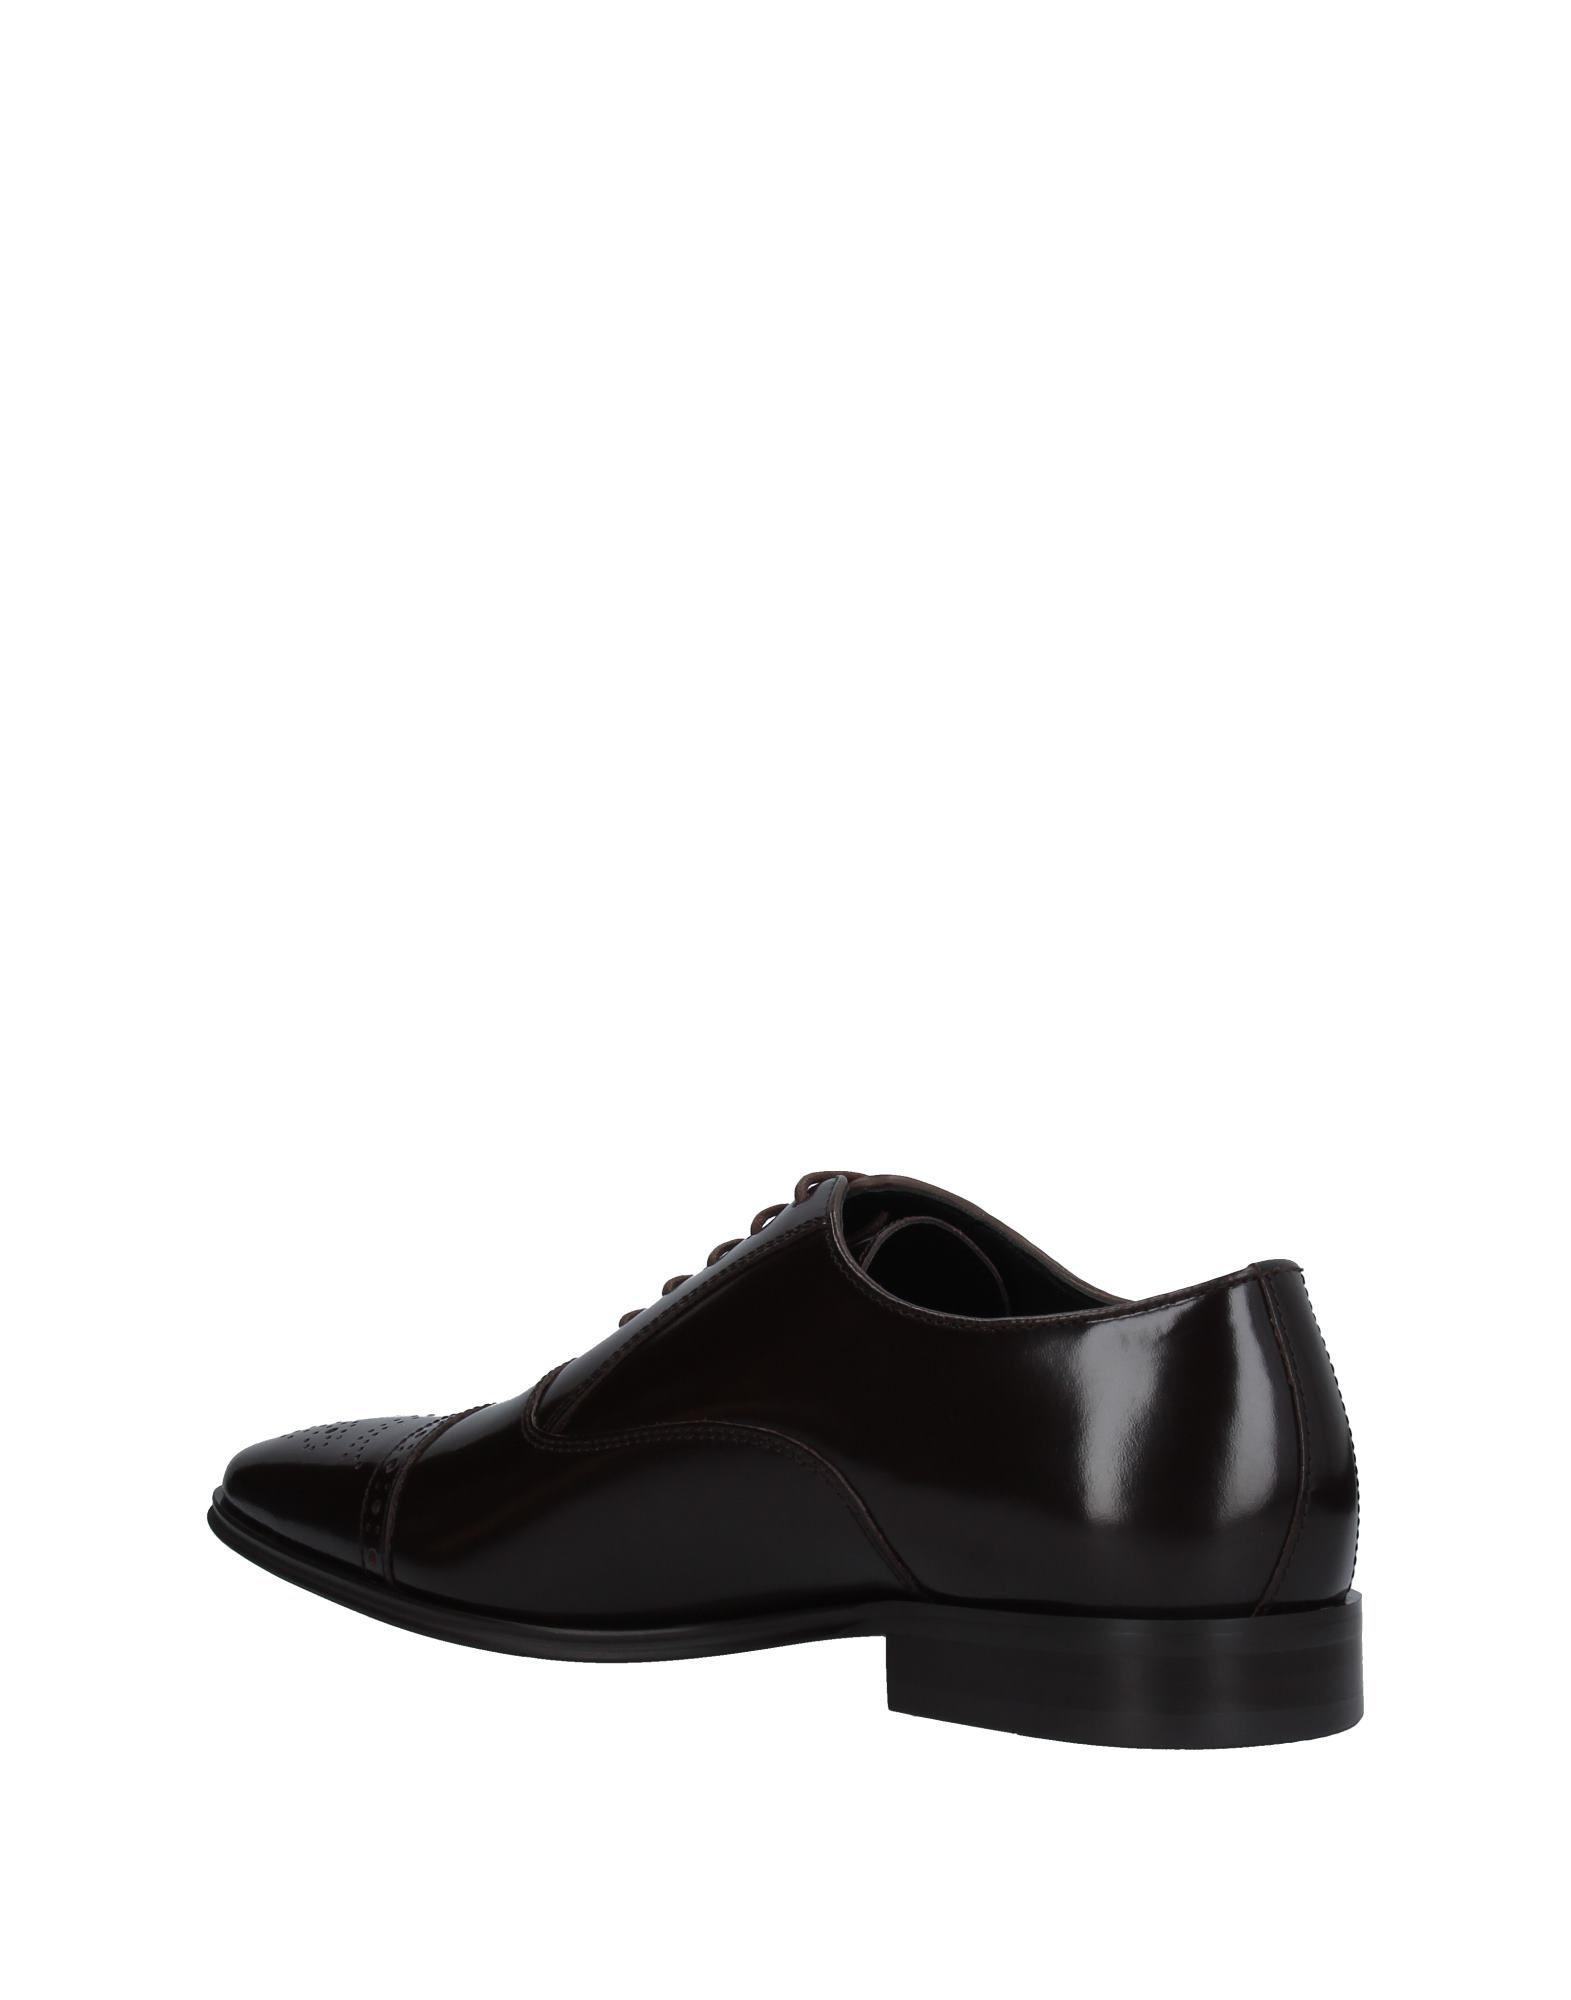 Versace Leather Lace-up Shoe in Dark Brown (Brown) for Men